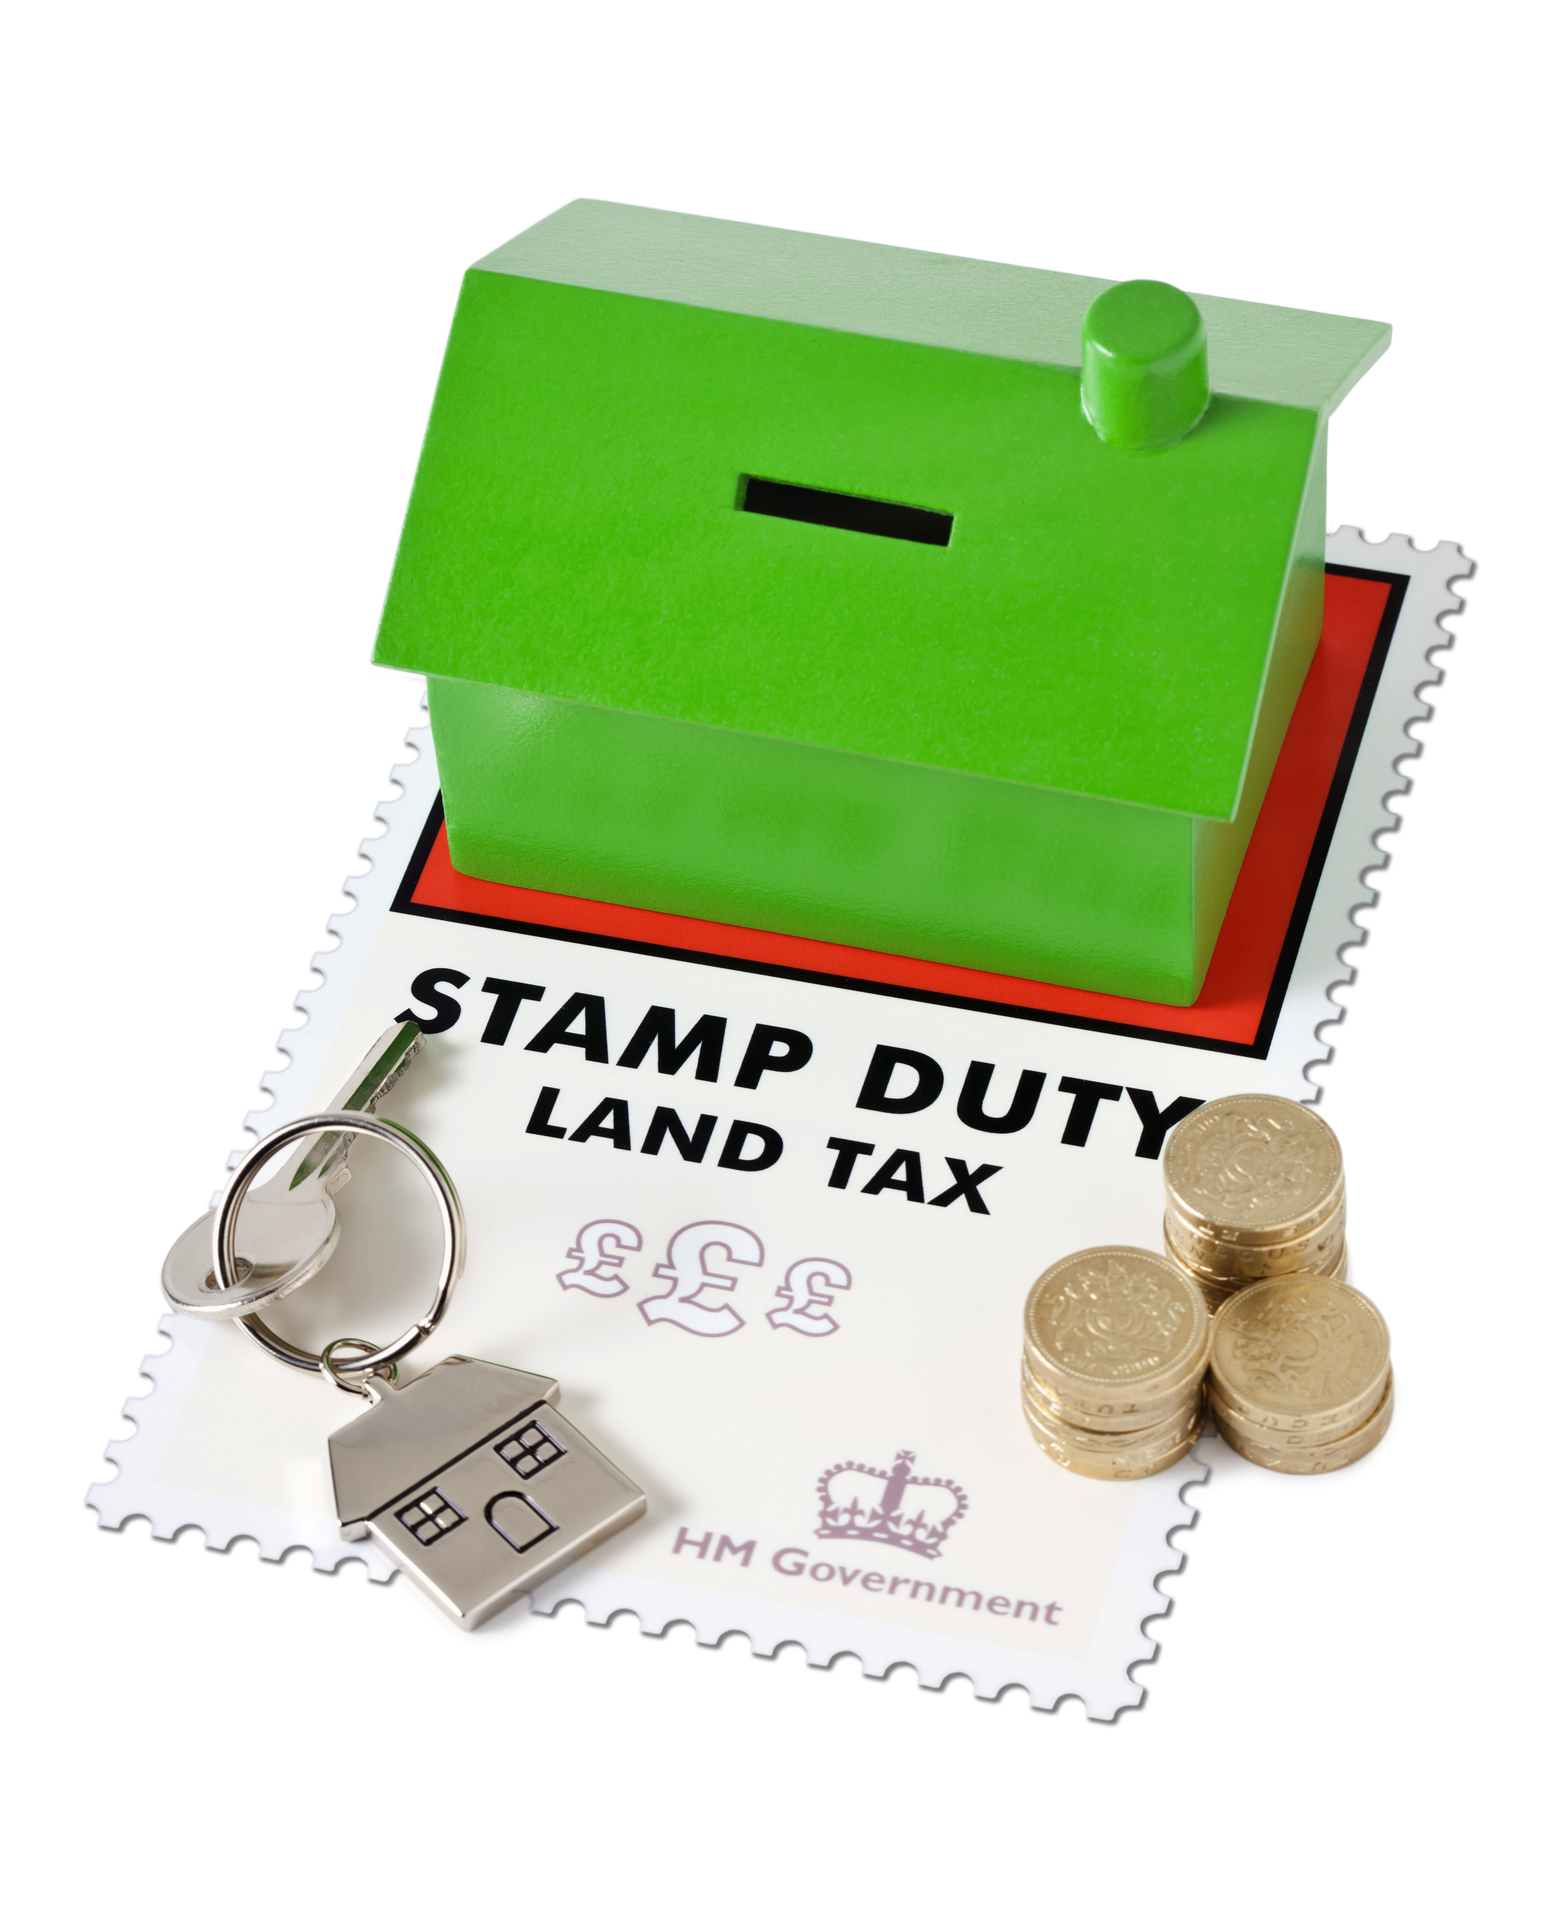 """""""Inspector. Artwork of graphics is mine.  Thanks.   Stamp Duty Land Tax payable to the HM Treasury of HM Government on the purchase of a property. The Tax is payable on all UK property purchased on a percentage of the purchase price over A#125,001. Isolated on White. Good copy space."""""""